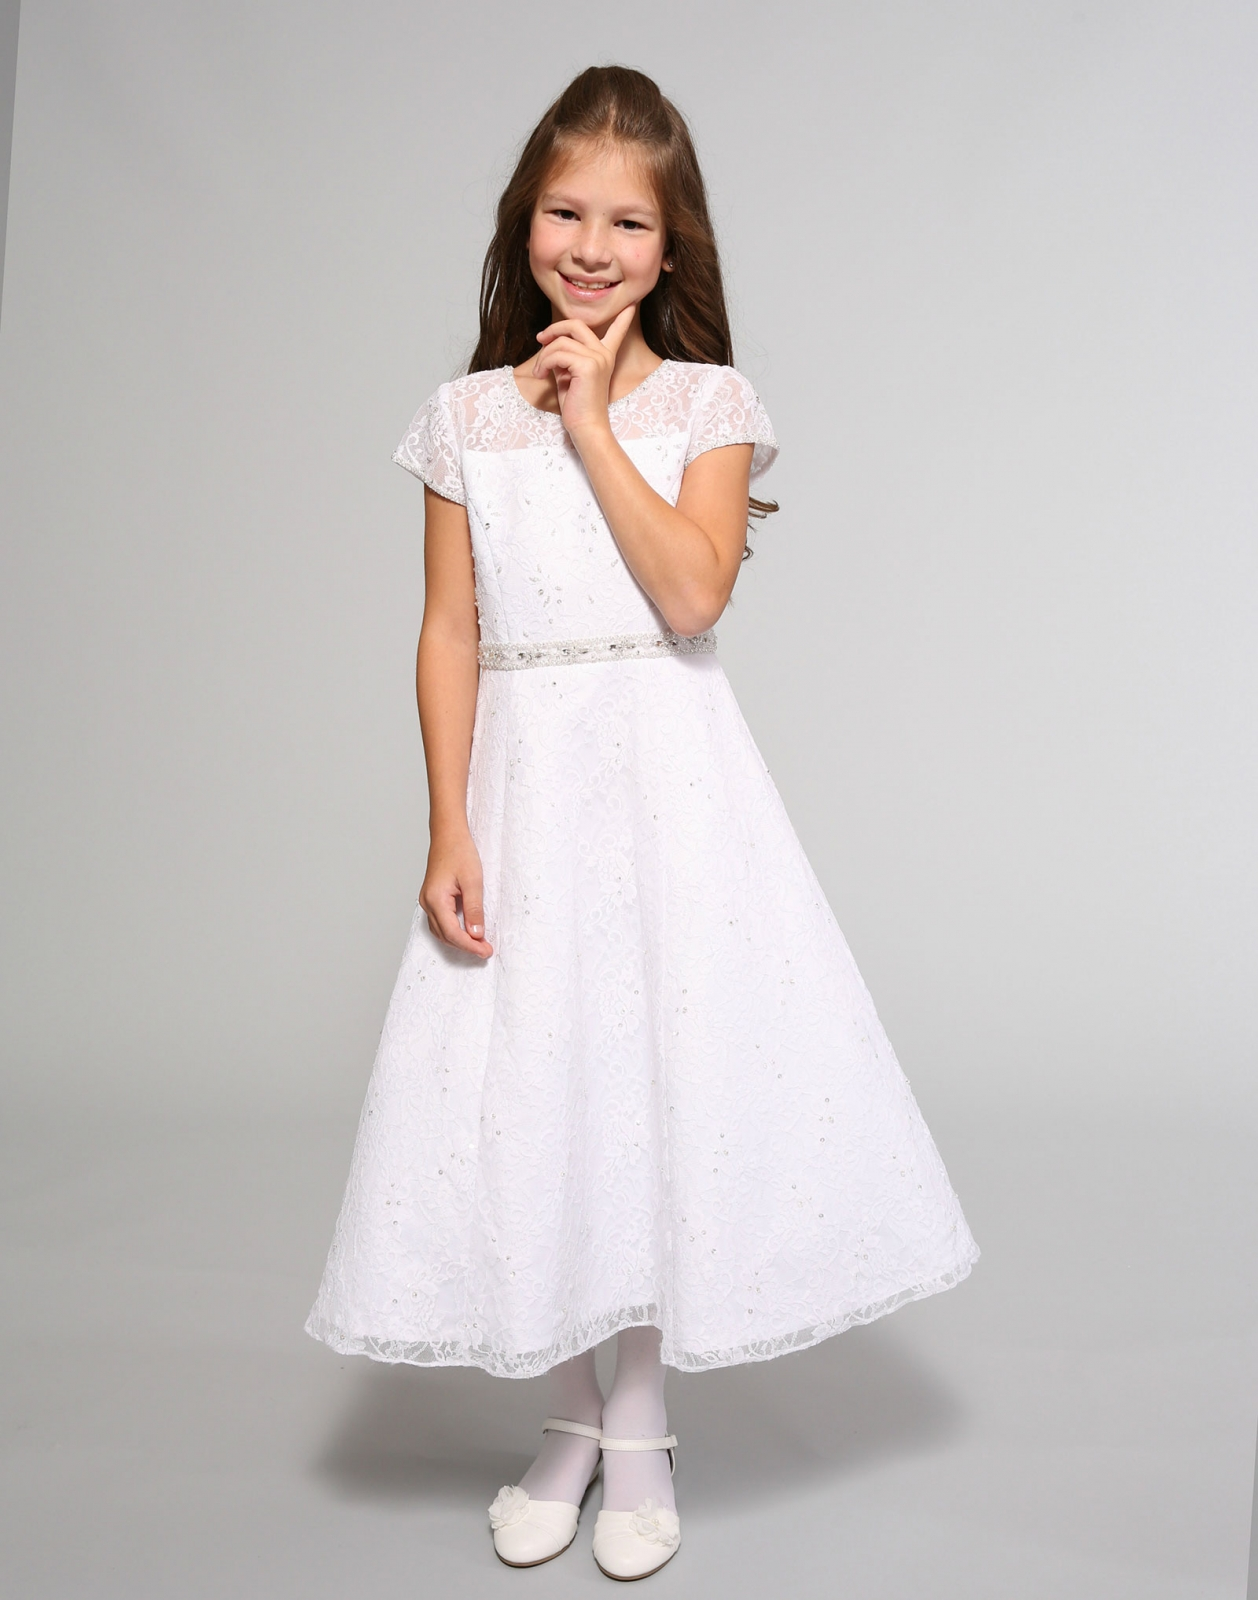 Sp3025 Sweetie Pie Collection Style 3025 White Short Sleeve